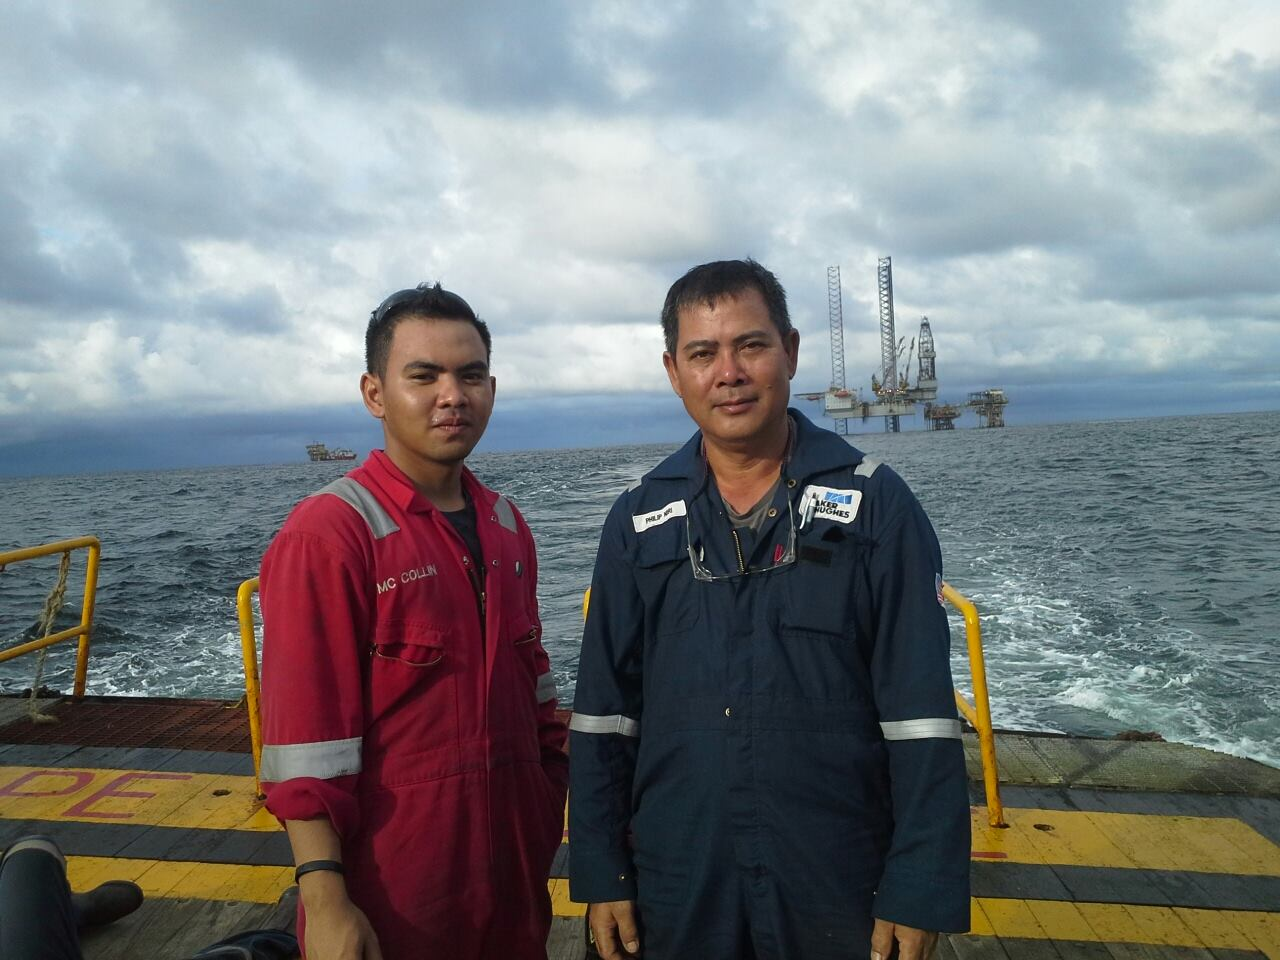 Sarawak, Oil, Prices, Crisis, Documentary, Offshore, Rig, Platform